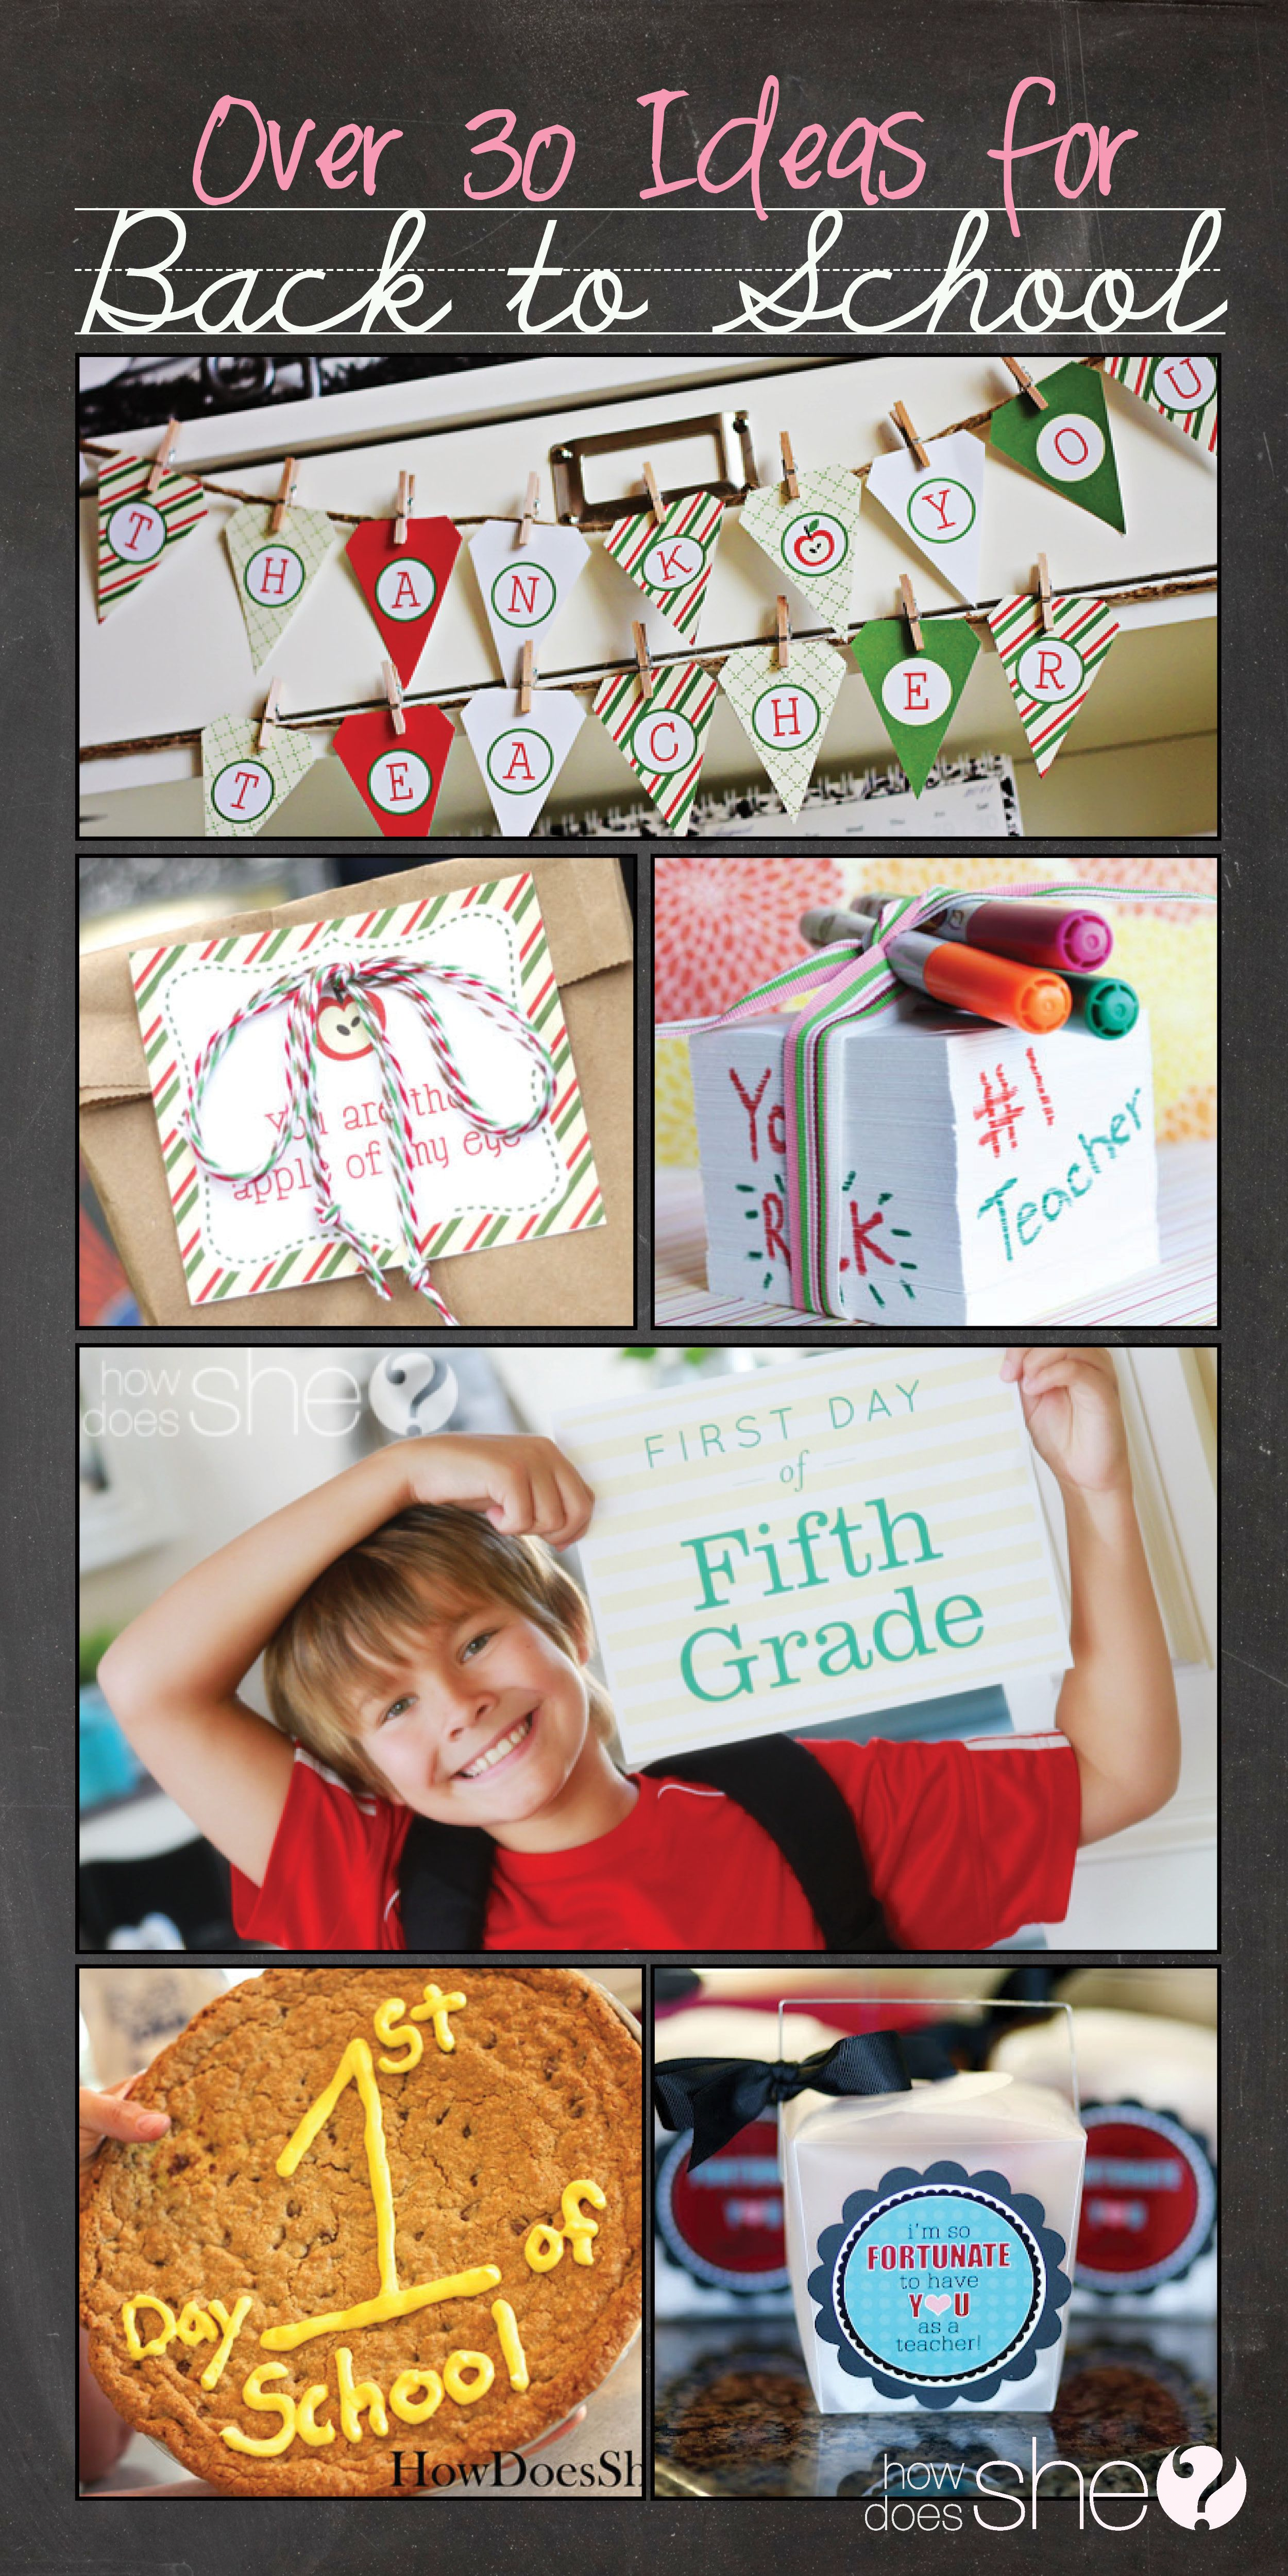 30 Back to School Ideas...